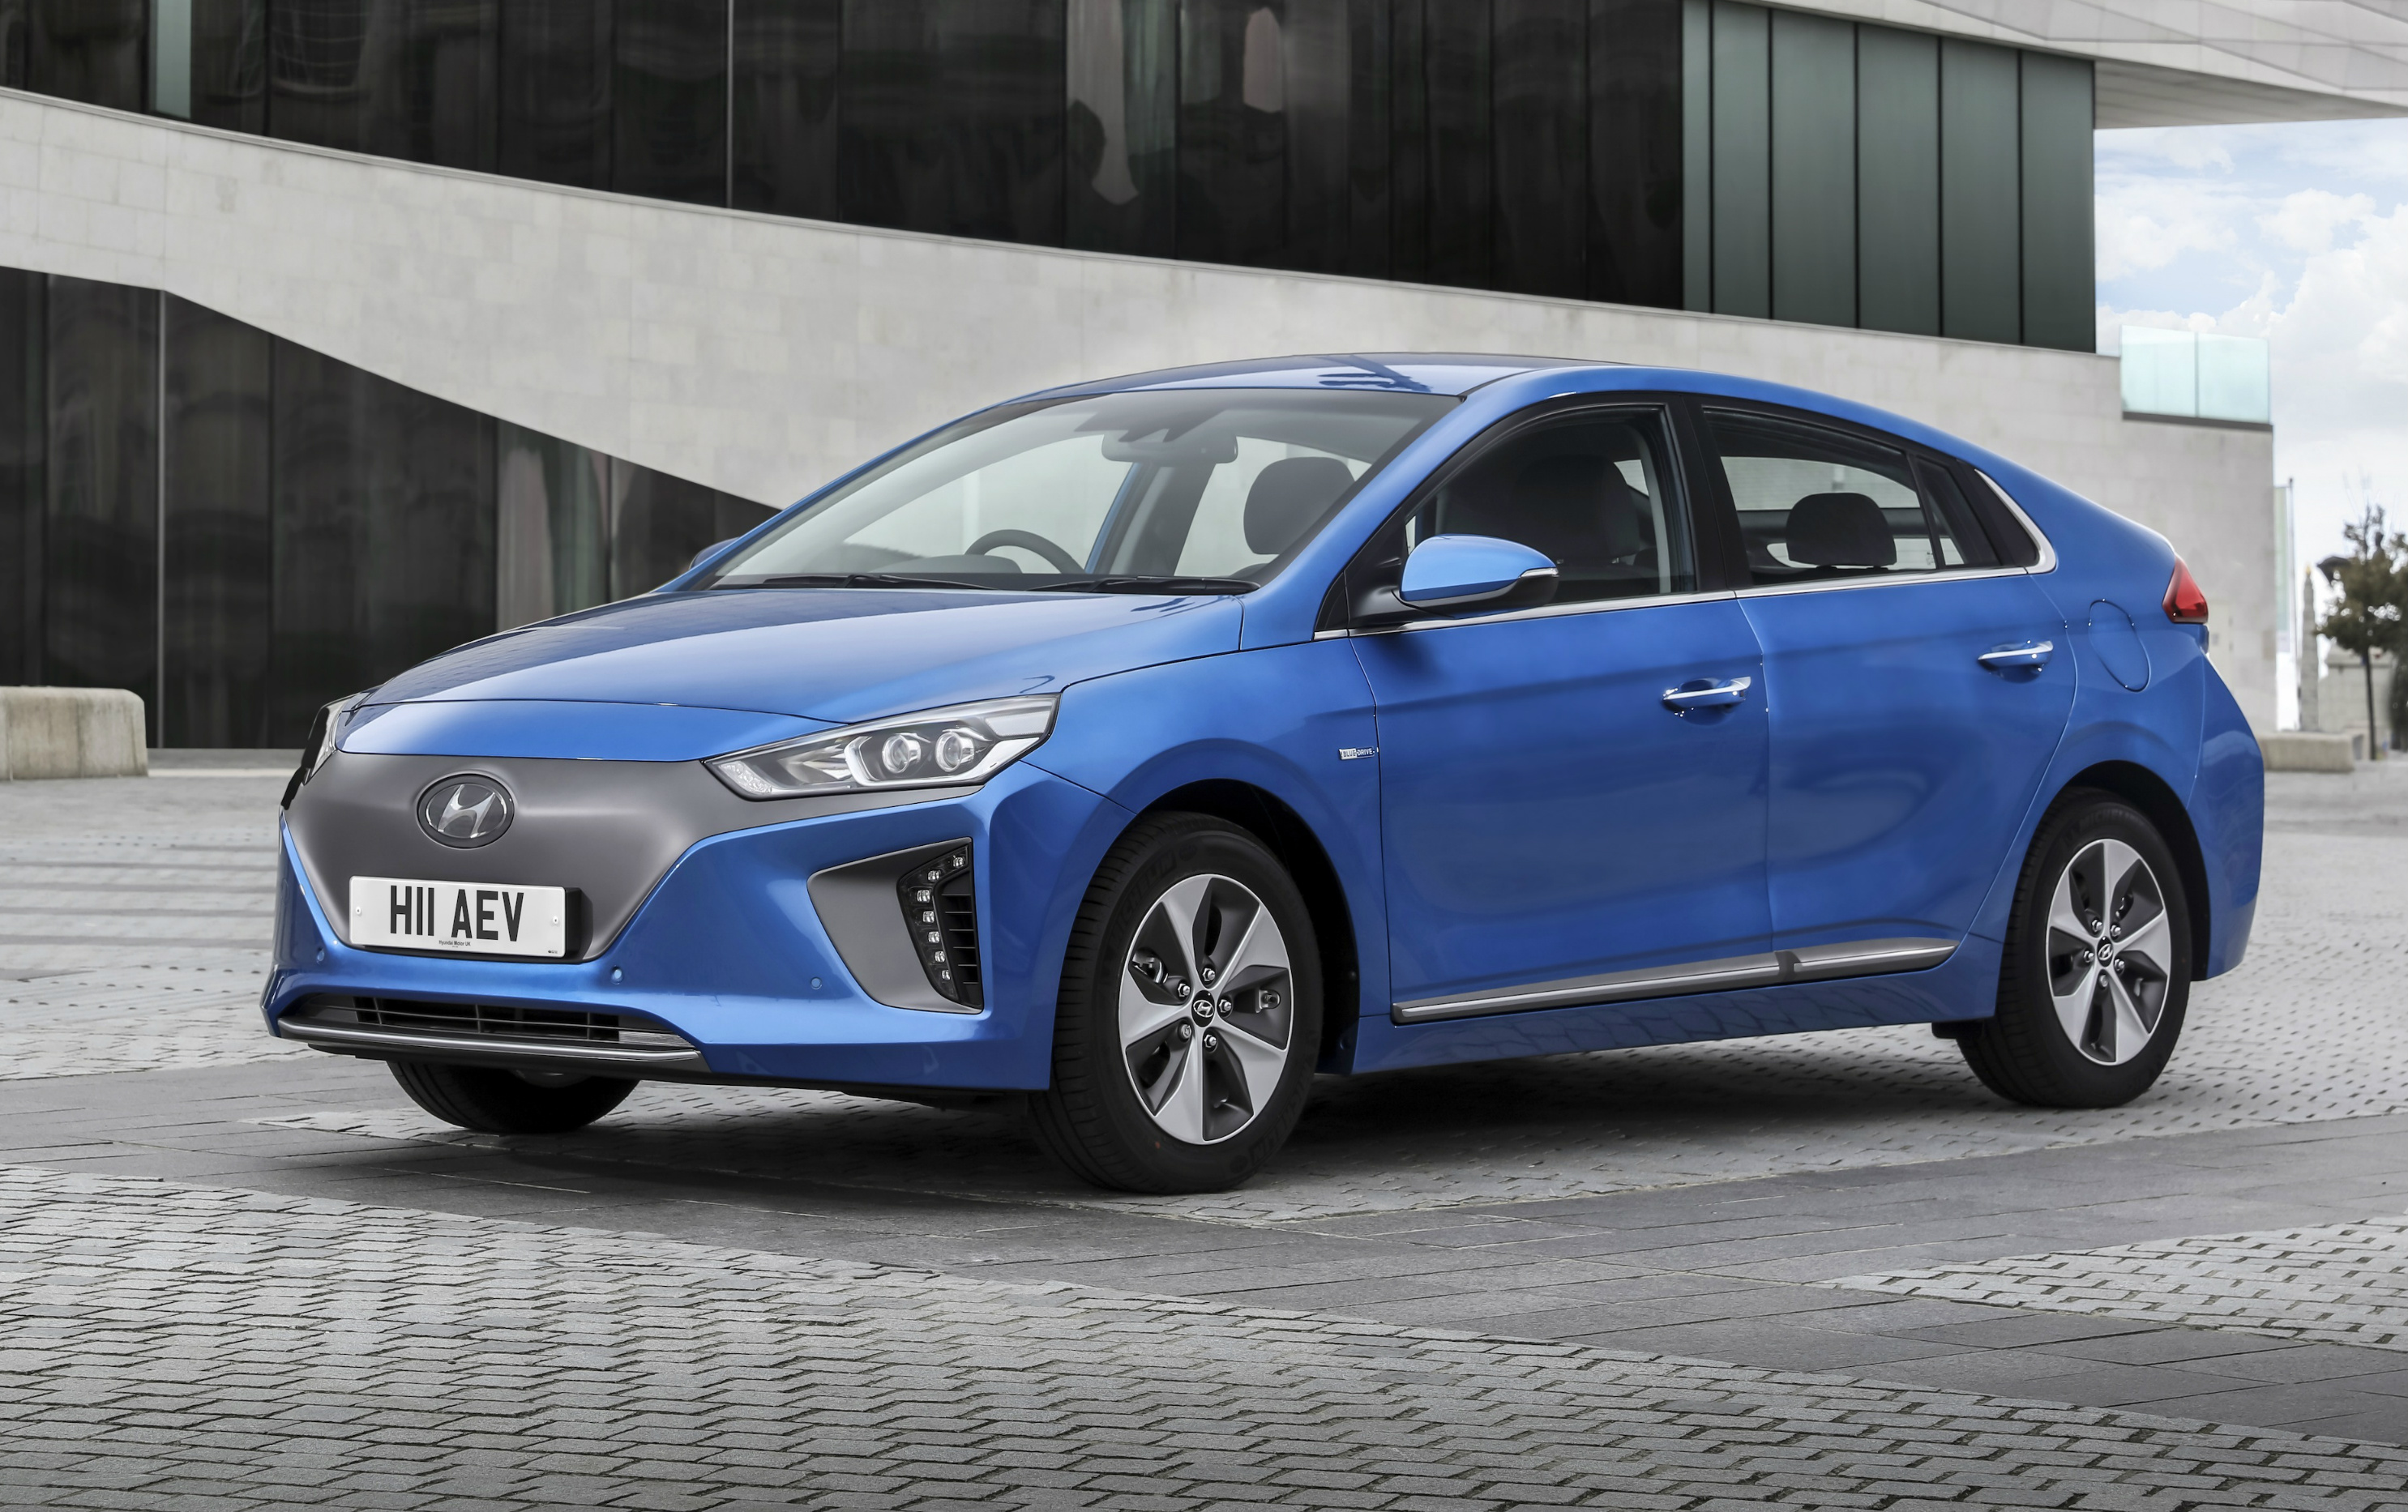 The practical Hyundai Ioniq Electric is much more commercially viable in Singapore than the spectacular Tesla Model S.